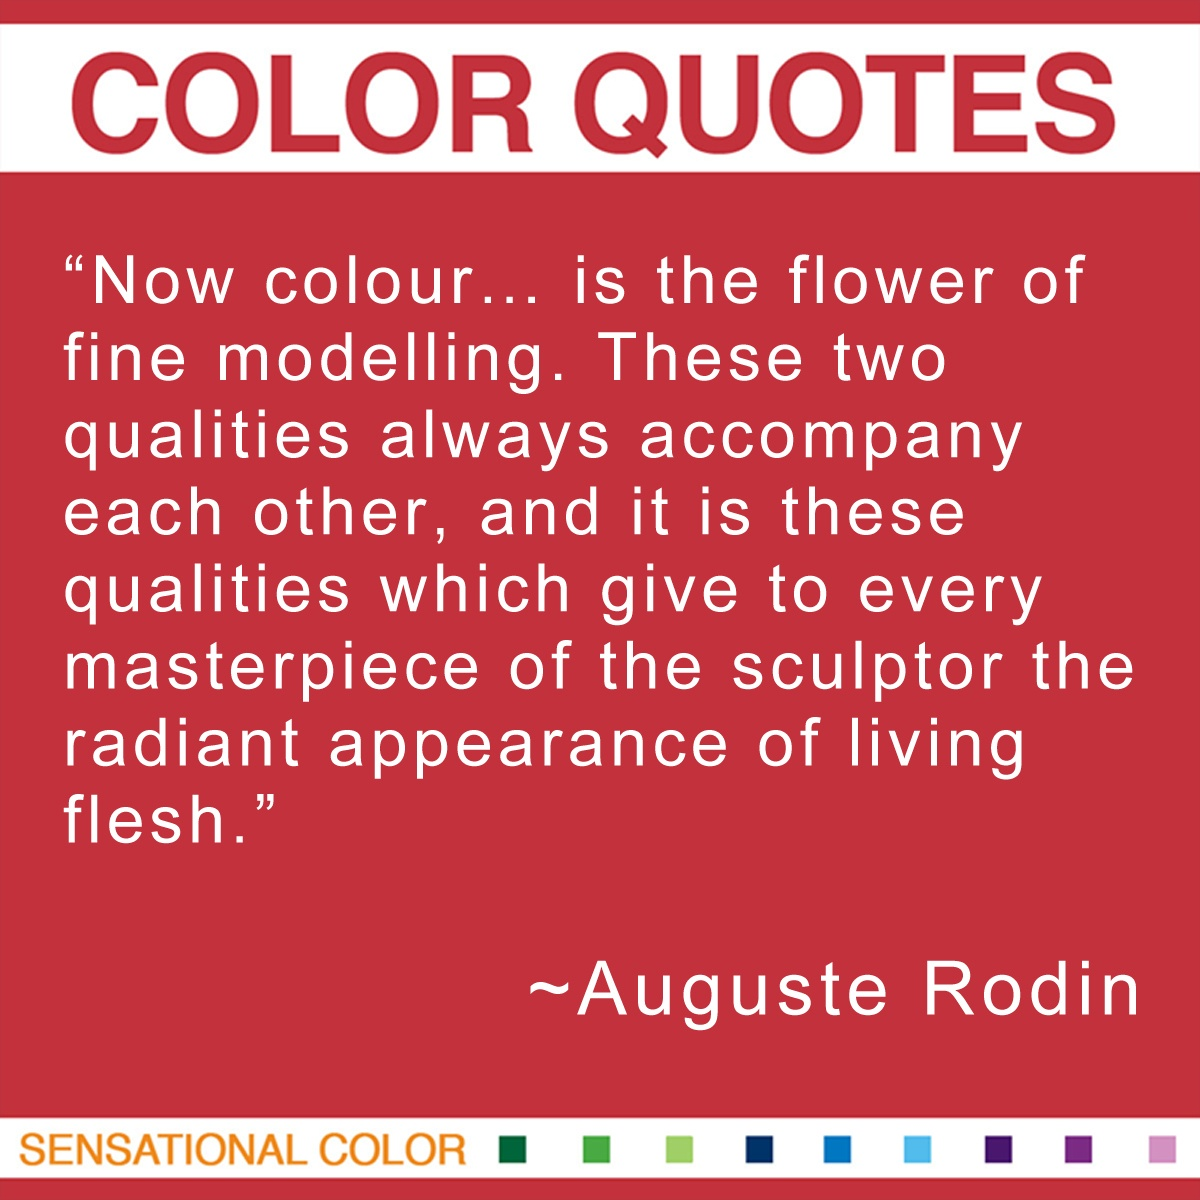 """Now colour… is the flower of fine modelling. These two qualities always accompany each other, and it is these qualities which give to every masterpiece of the sculptor the radiant appearance of living flesh."" - Auguste Rodin"